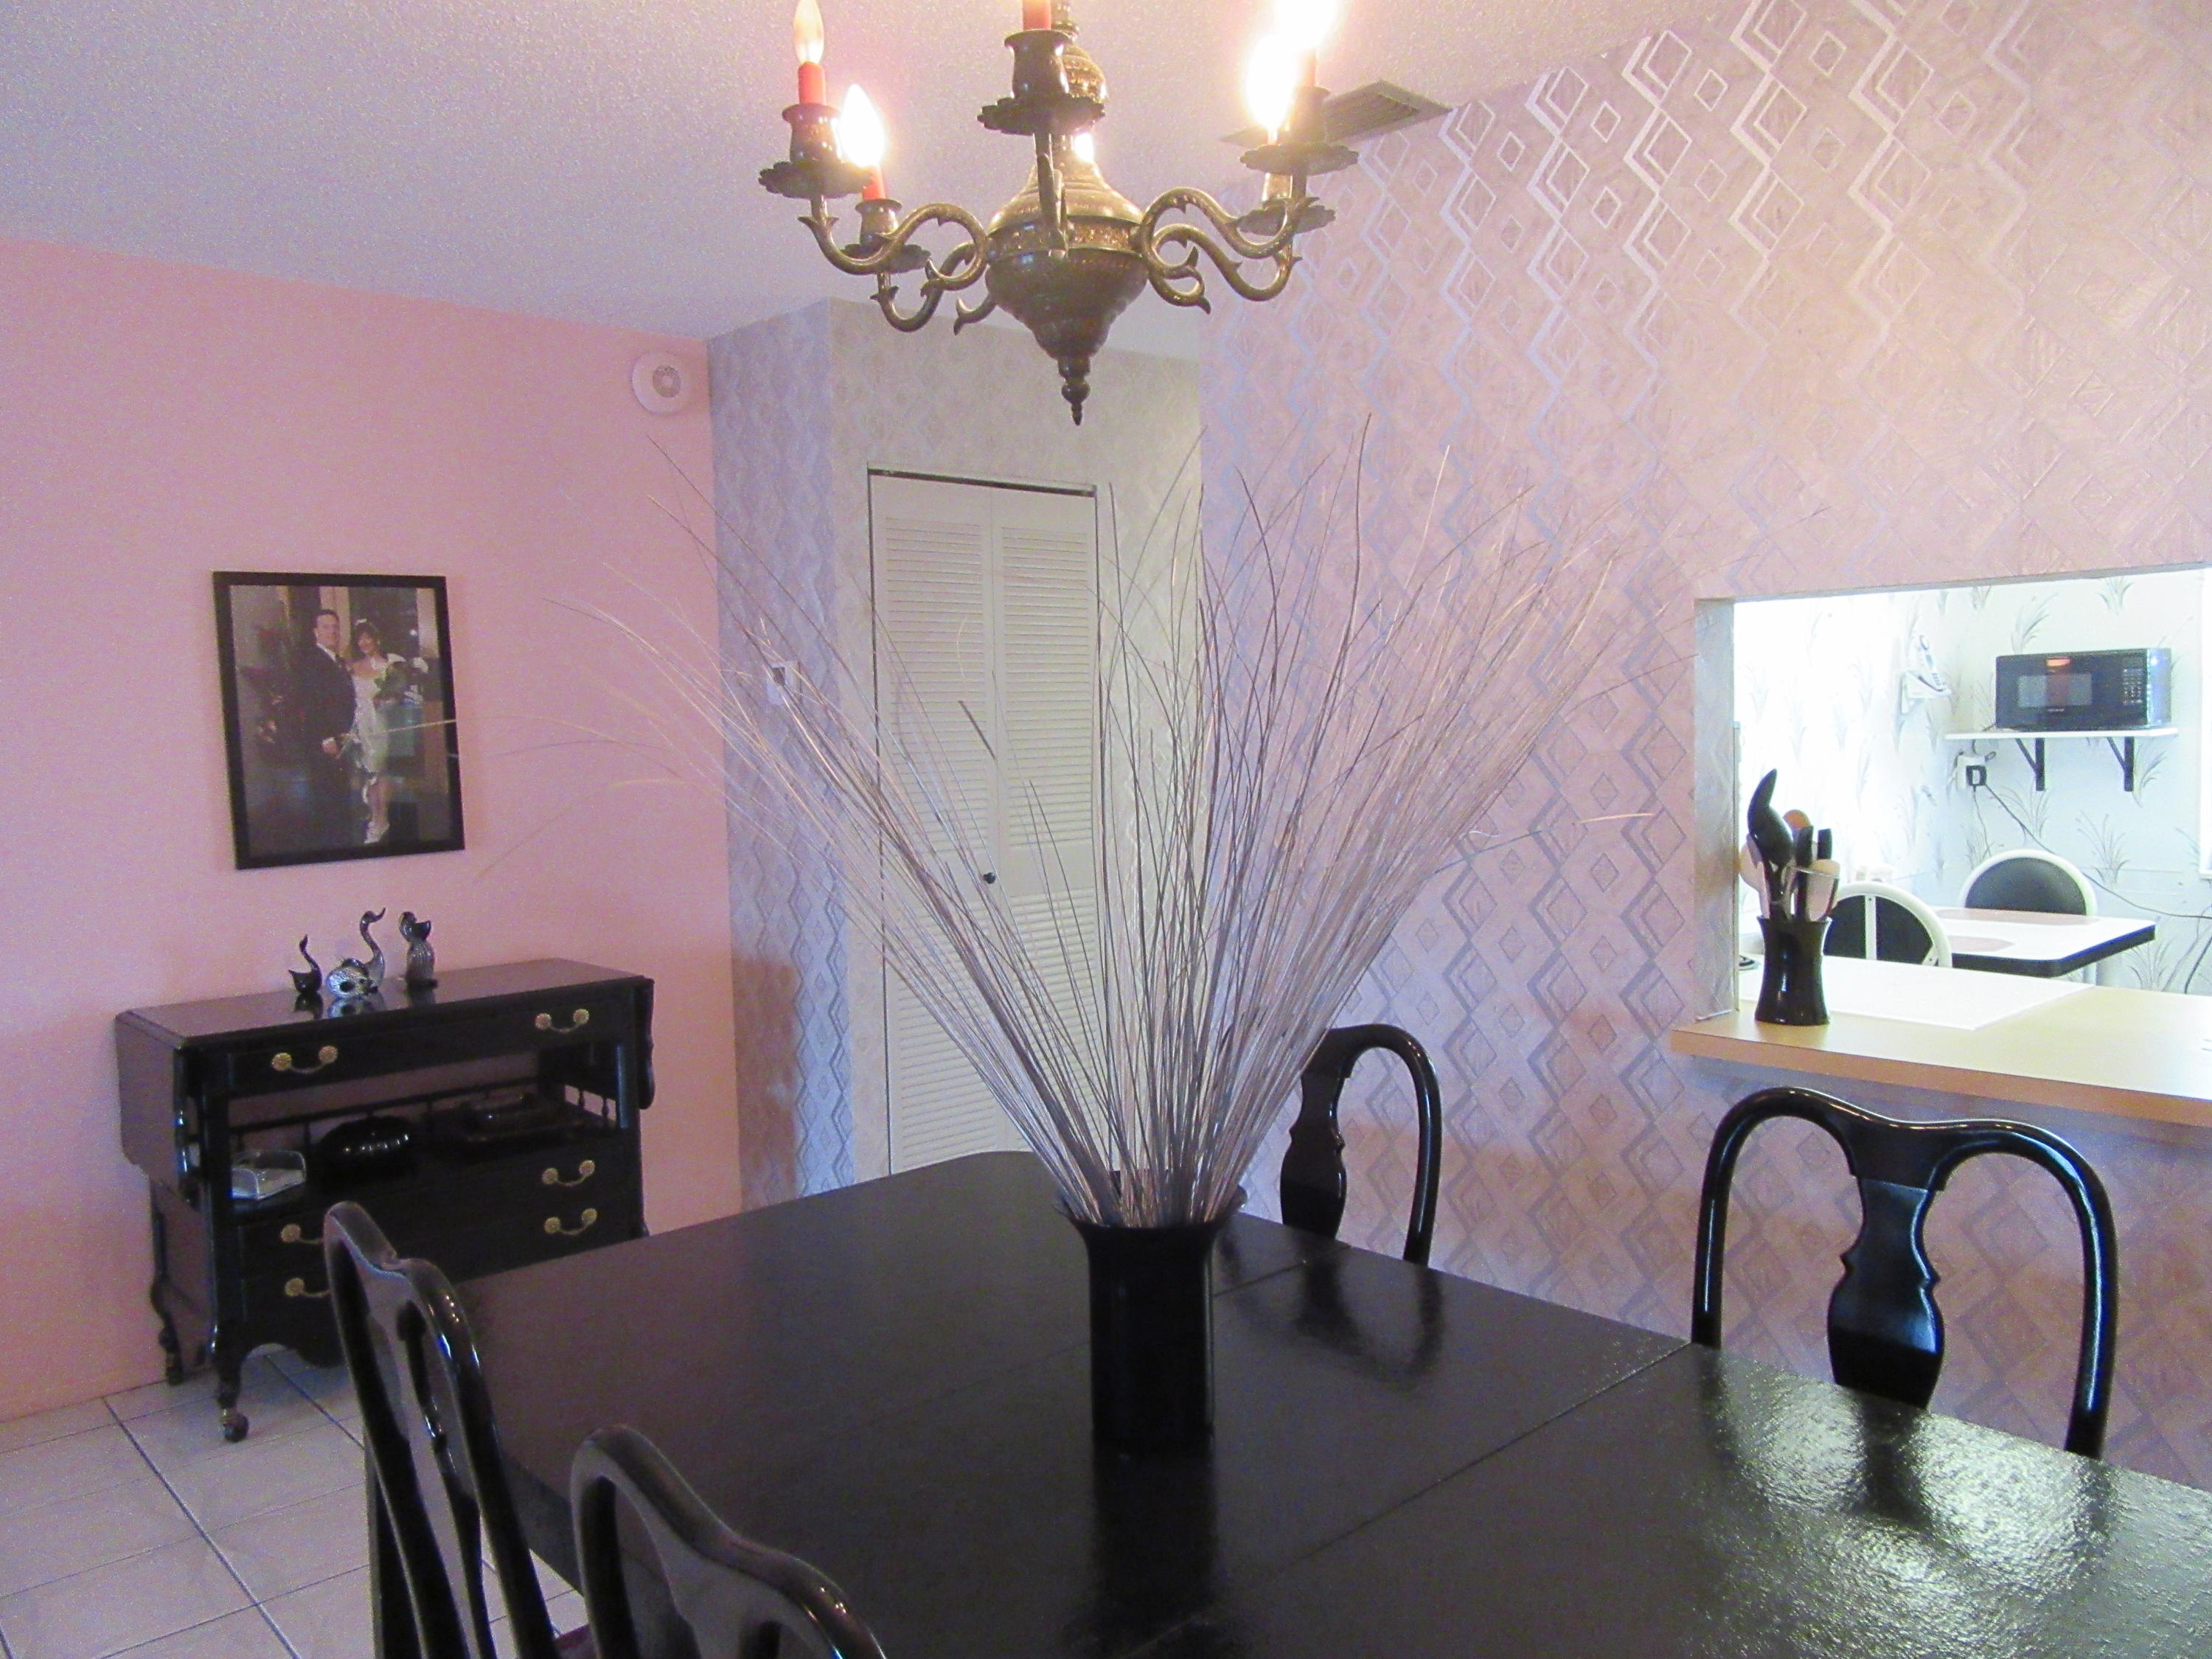 DINING RM AREA